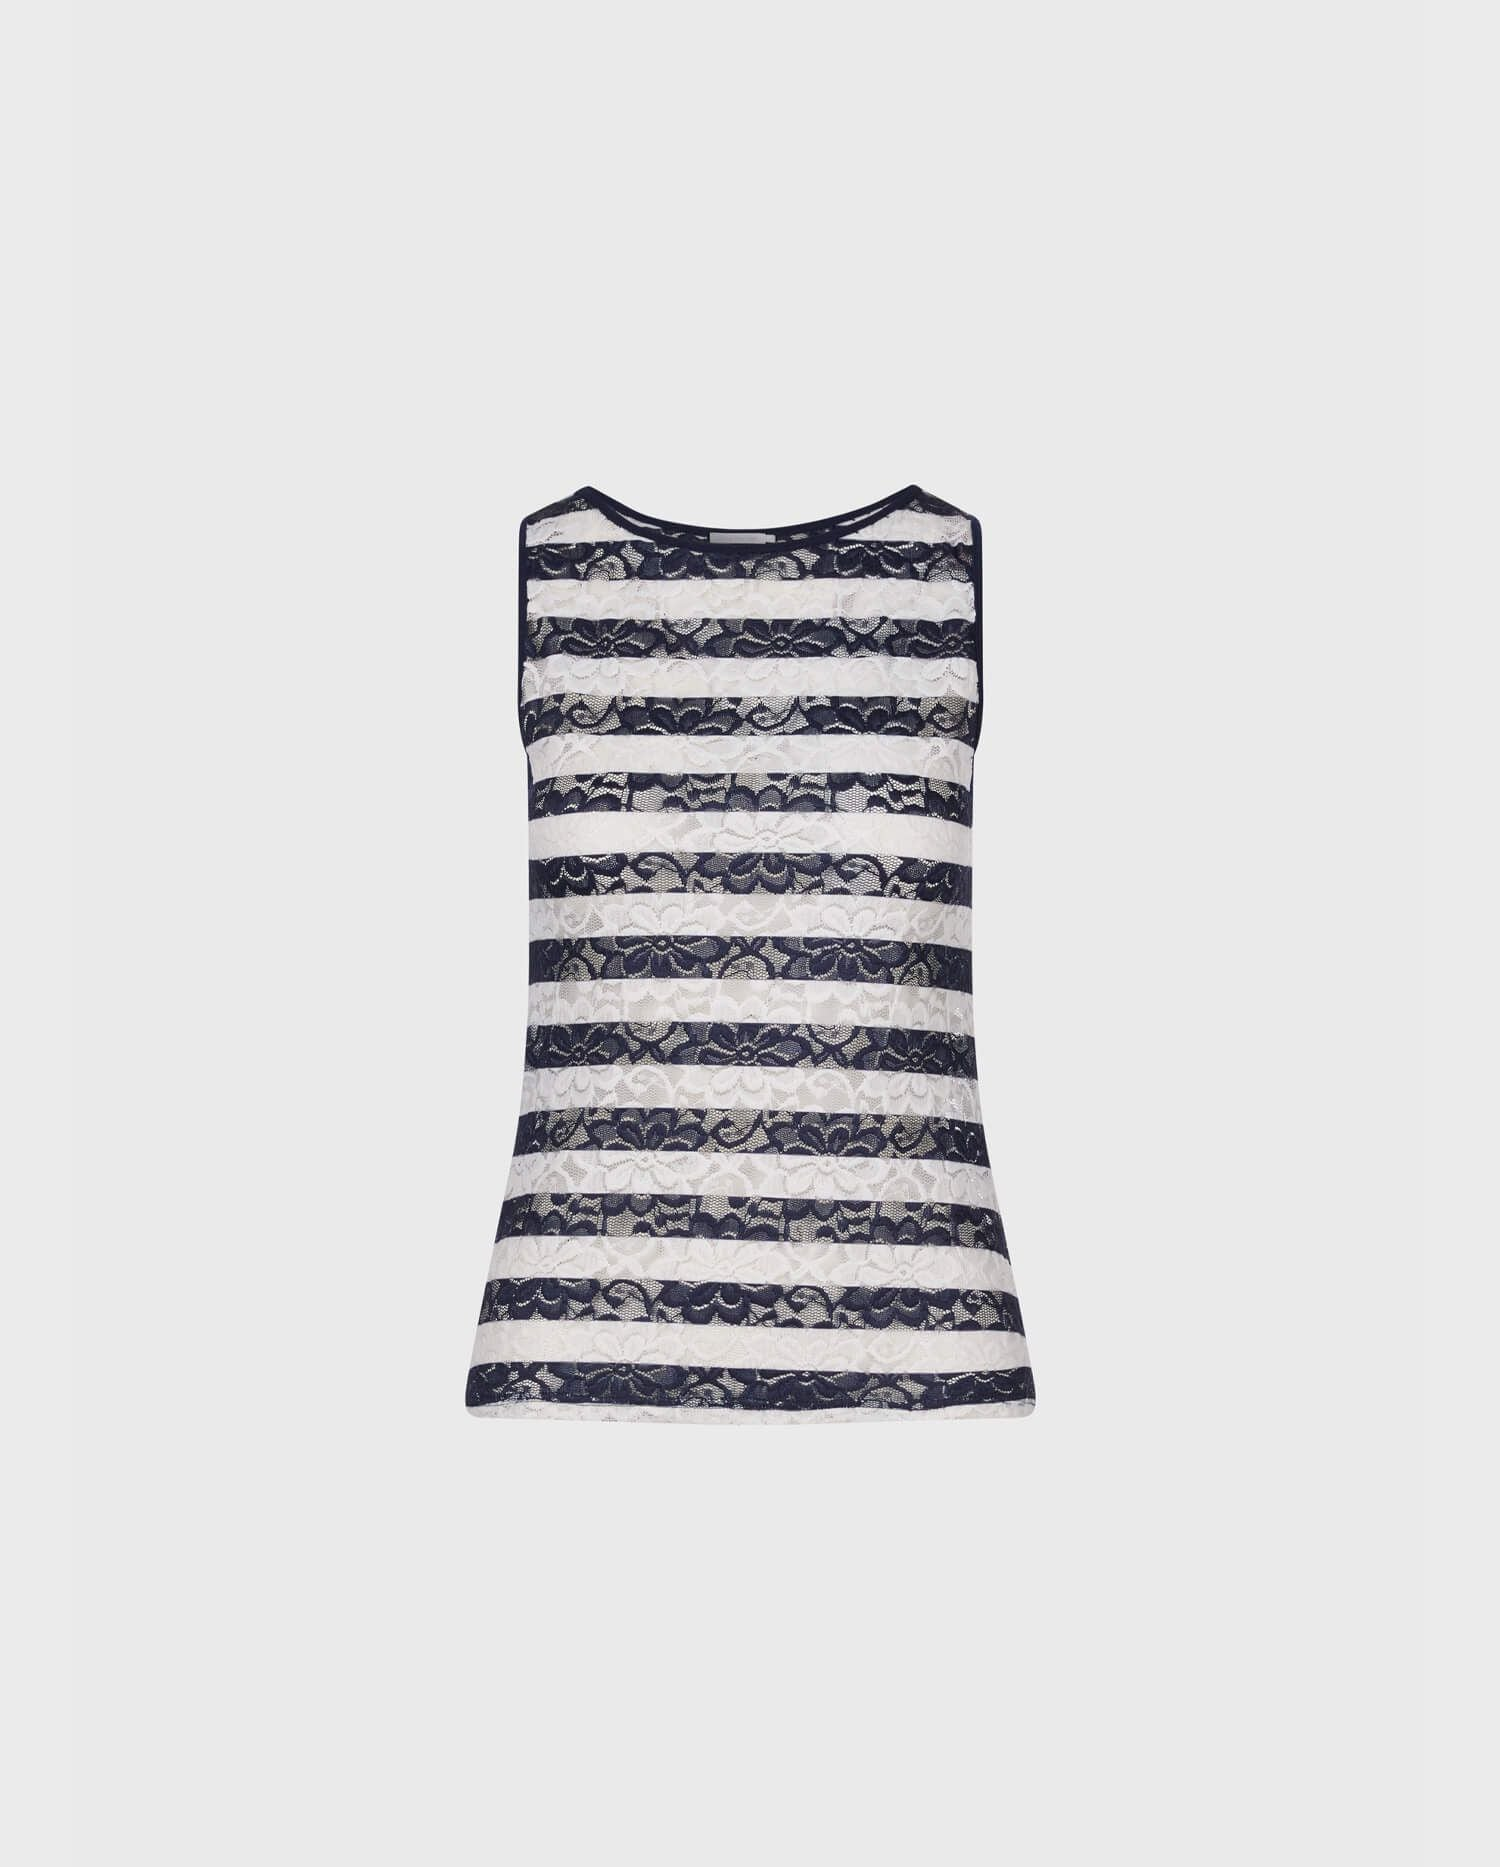 Add the blue and white stripe mariner inspired CHARLENA top for the perfect look of Parisian chic.